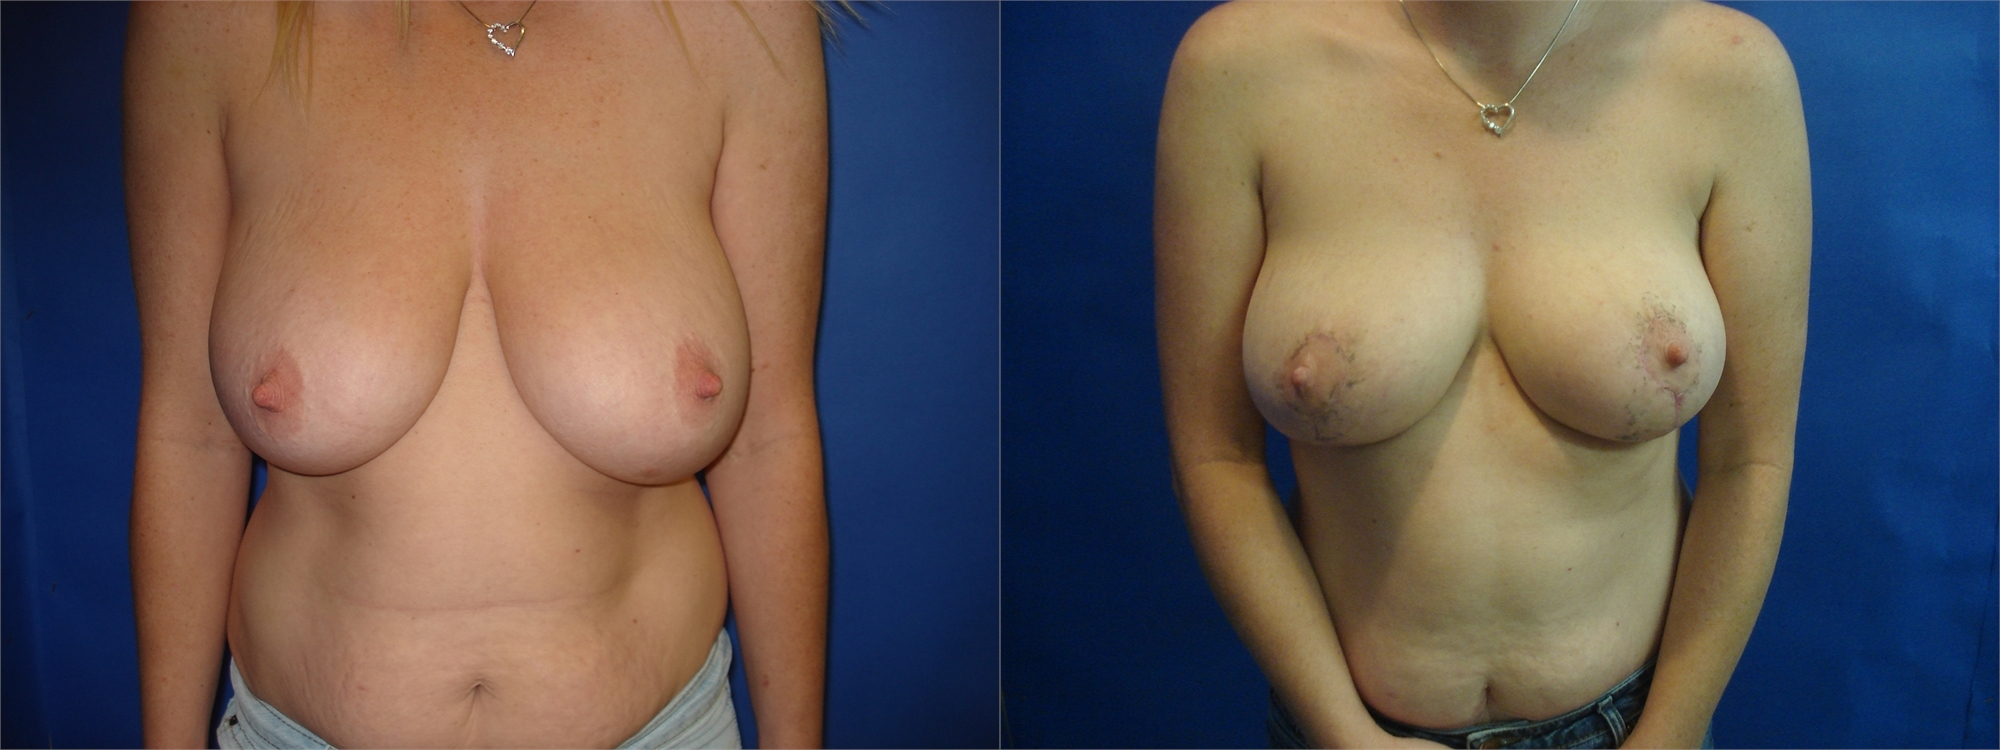 Breast Lift Before and After Photo Tacoma, WA